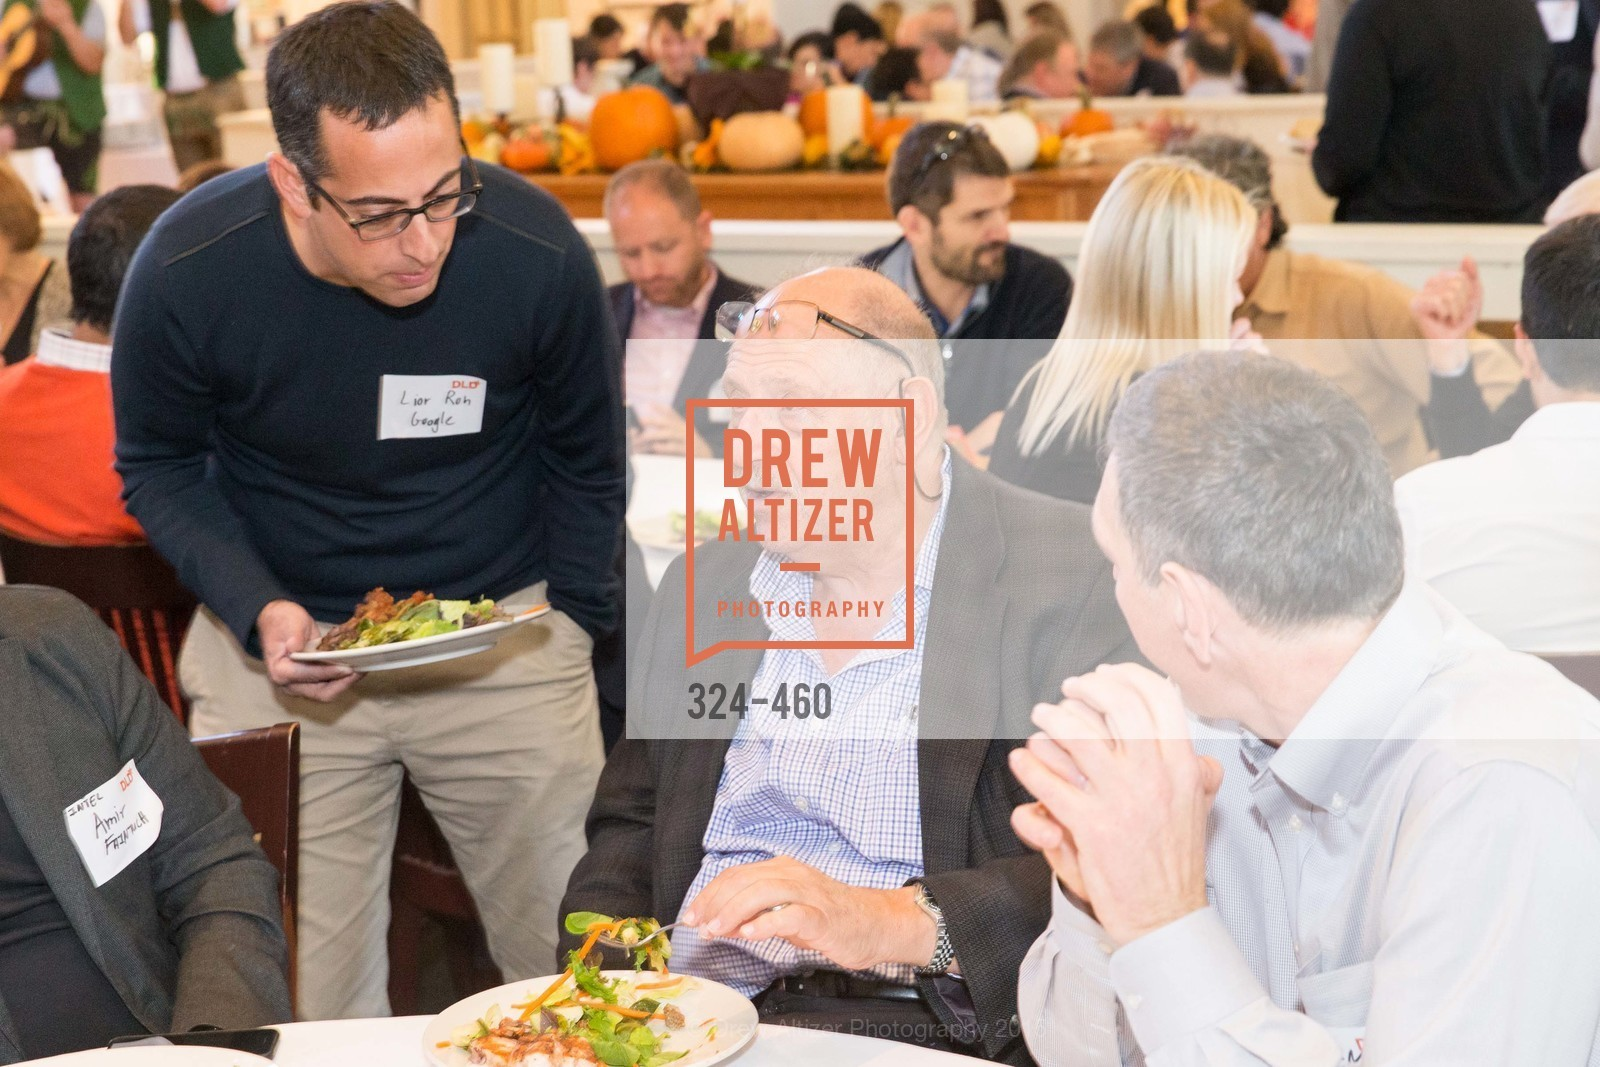 Extras, DLD Palo Alto Luncheon, November 6th, 2015, Photo,Drew Altizer, Drew Altizer Photography, full-service event agency, private events, San Francisco photographer, photographer California